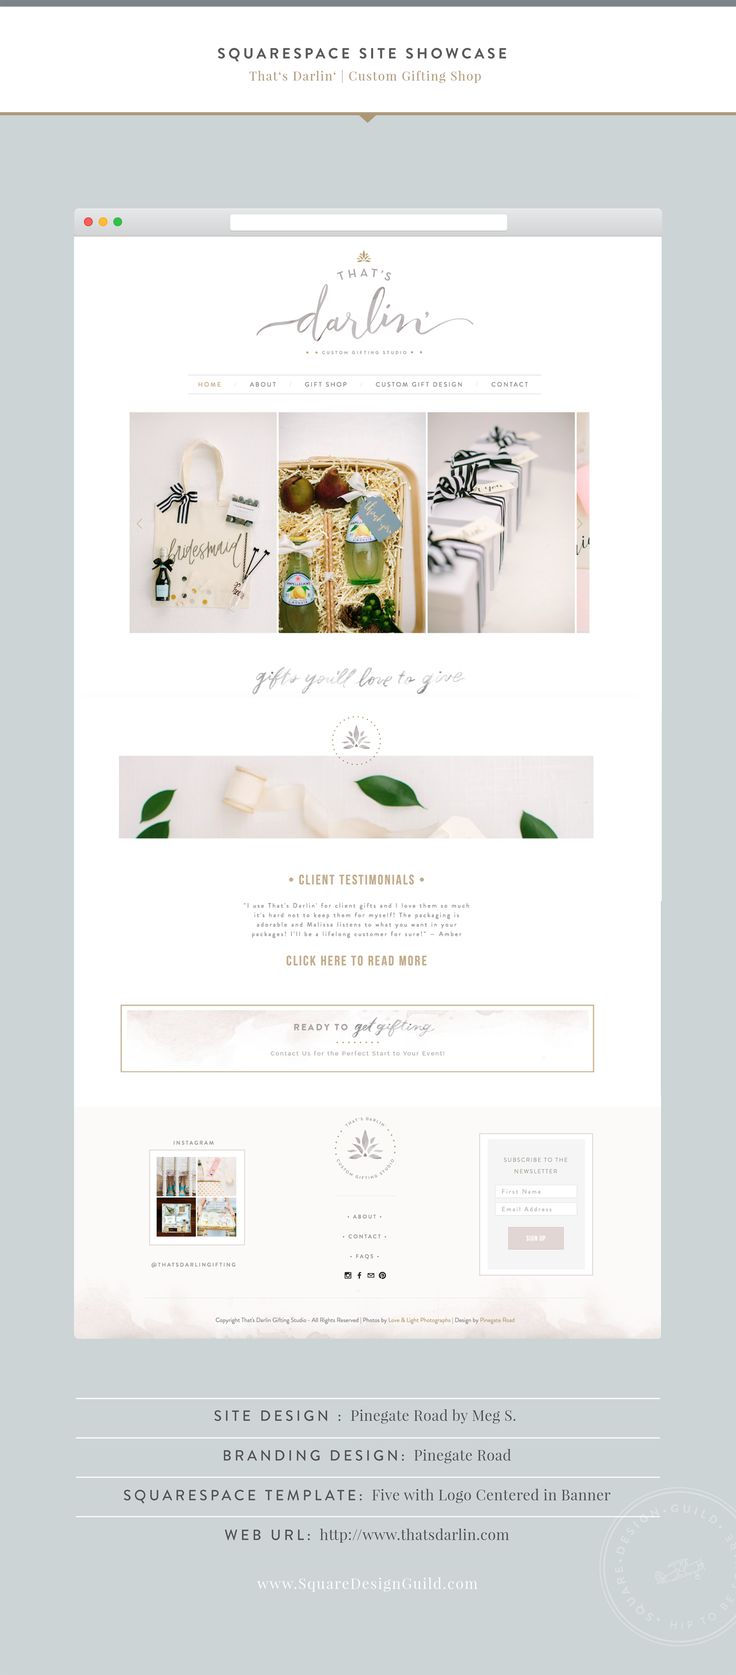 Squarespace Design Guild | That's Darlin by Pinegate Road | Five Template